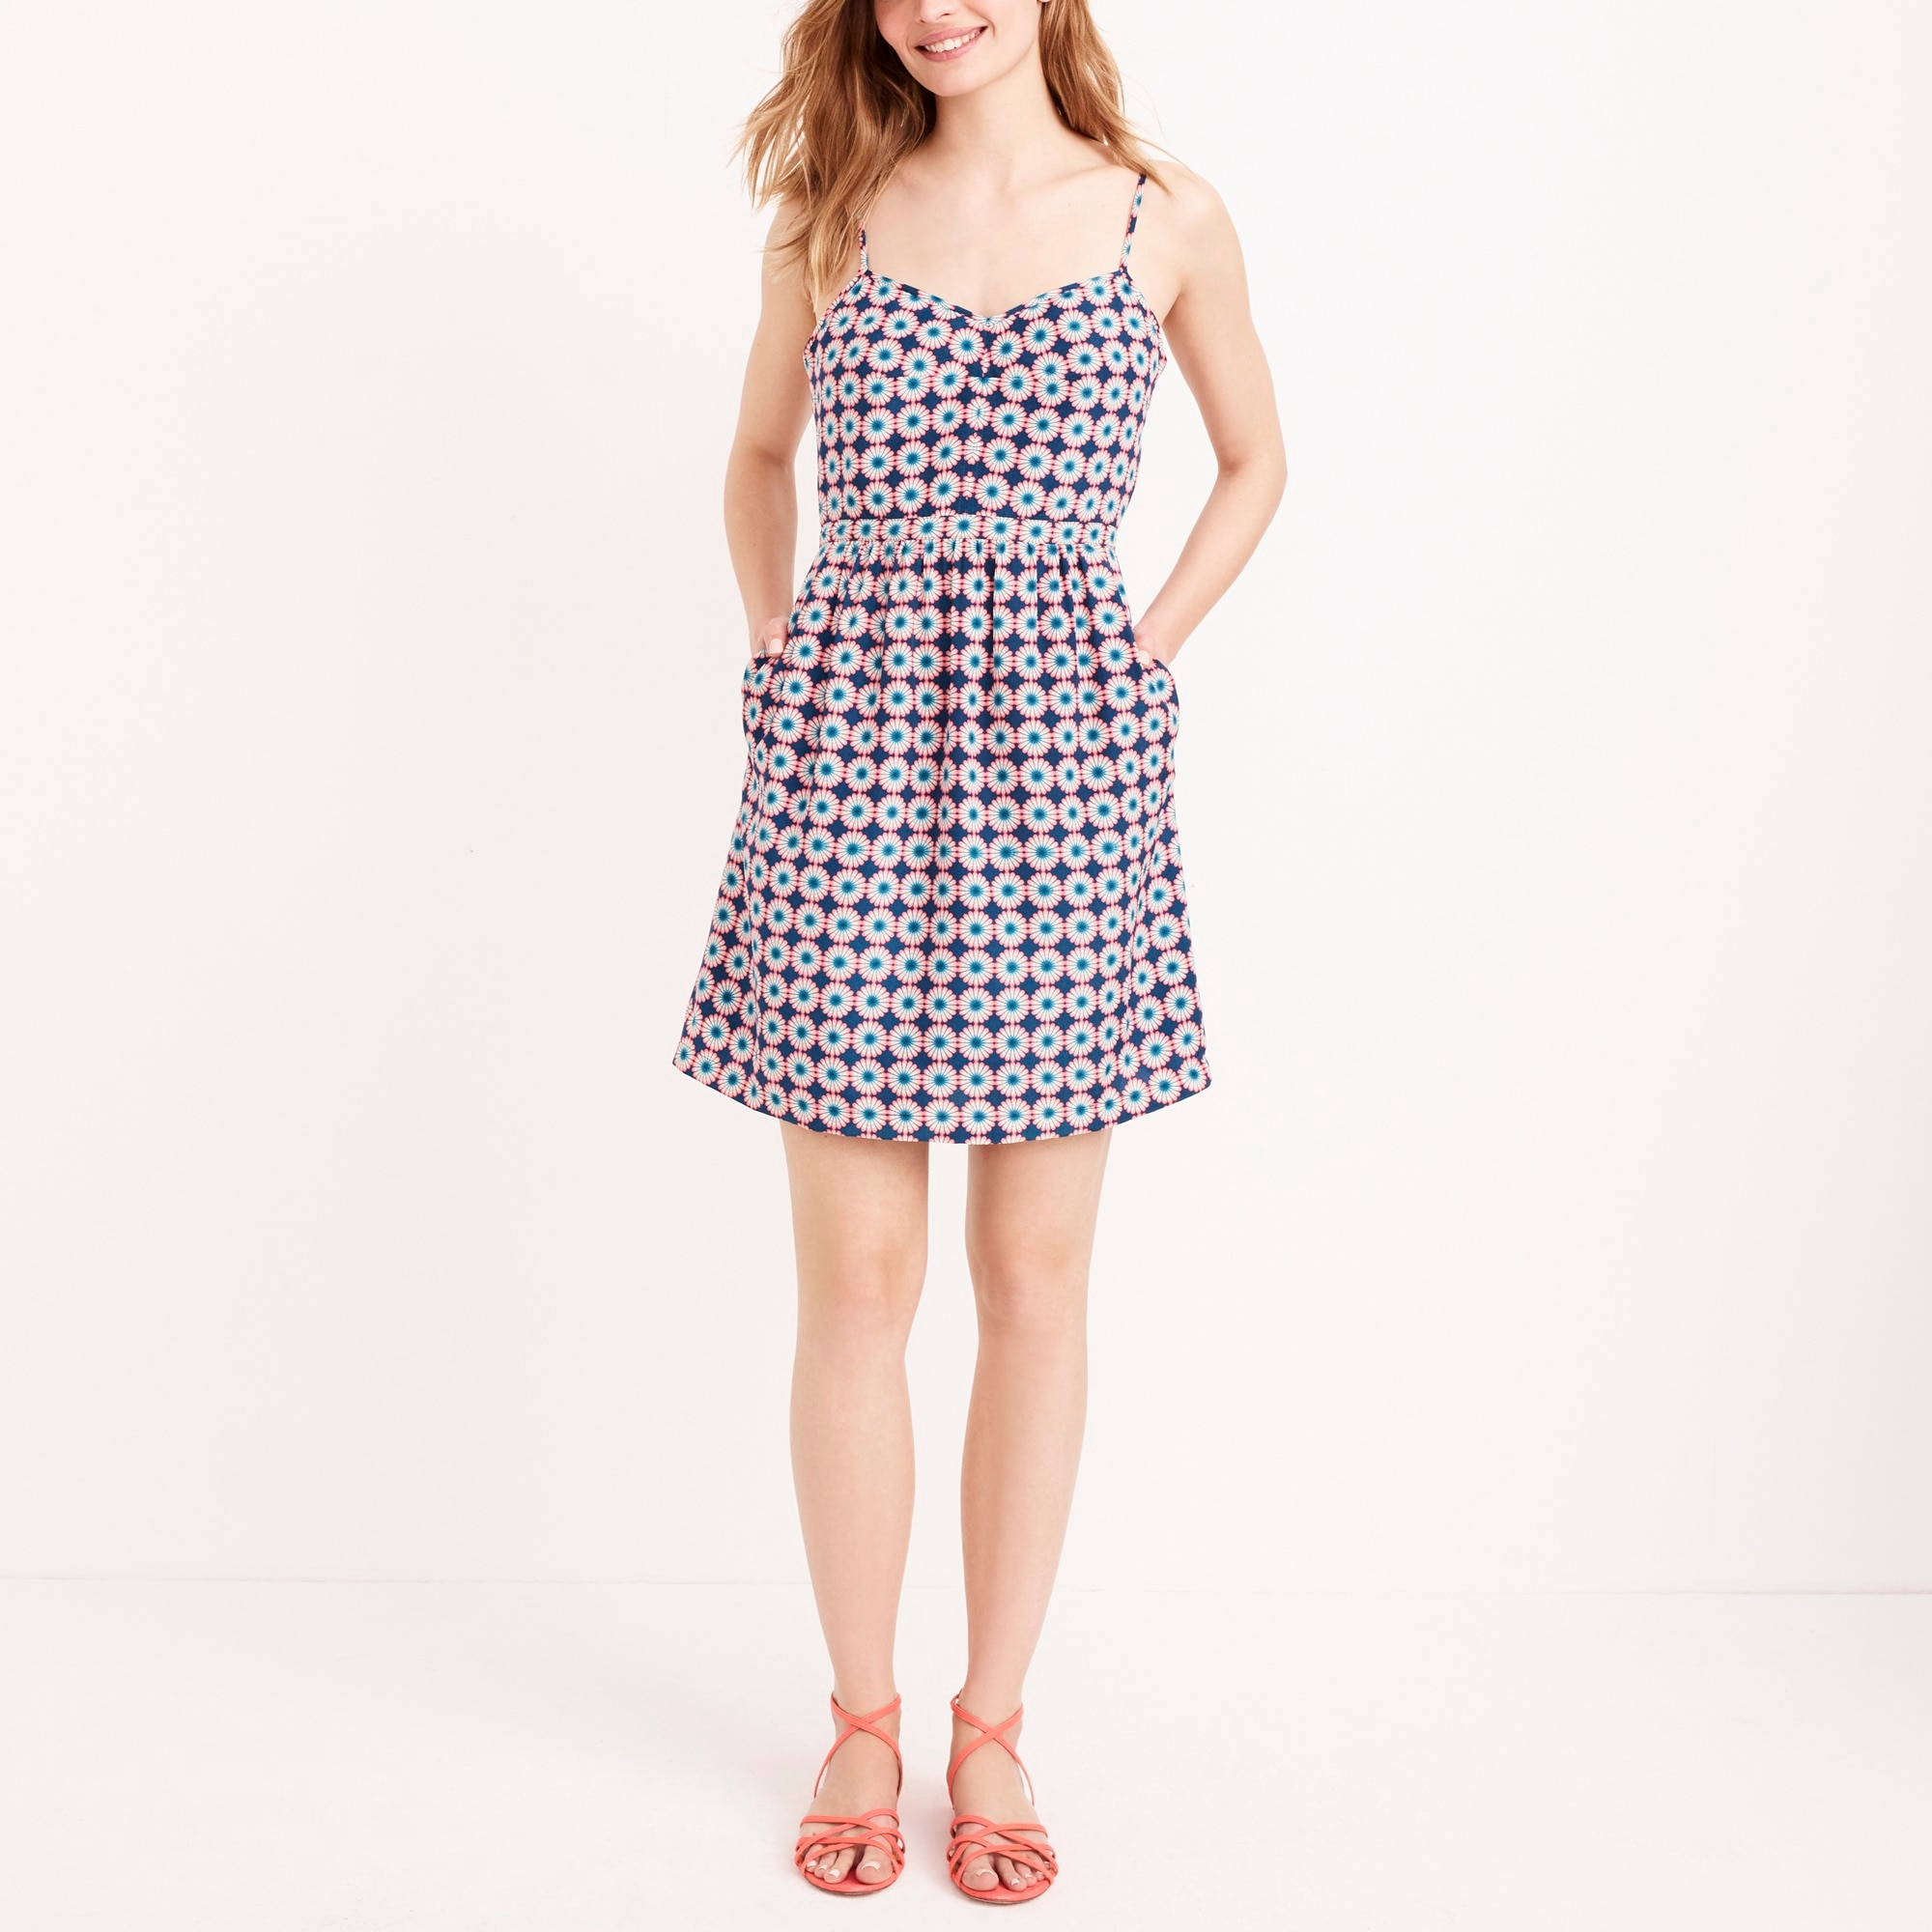 printed seaside cami dress - women's dresses